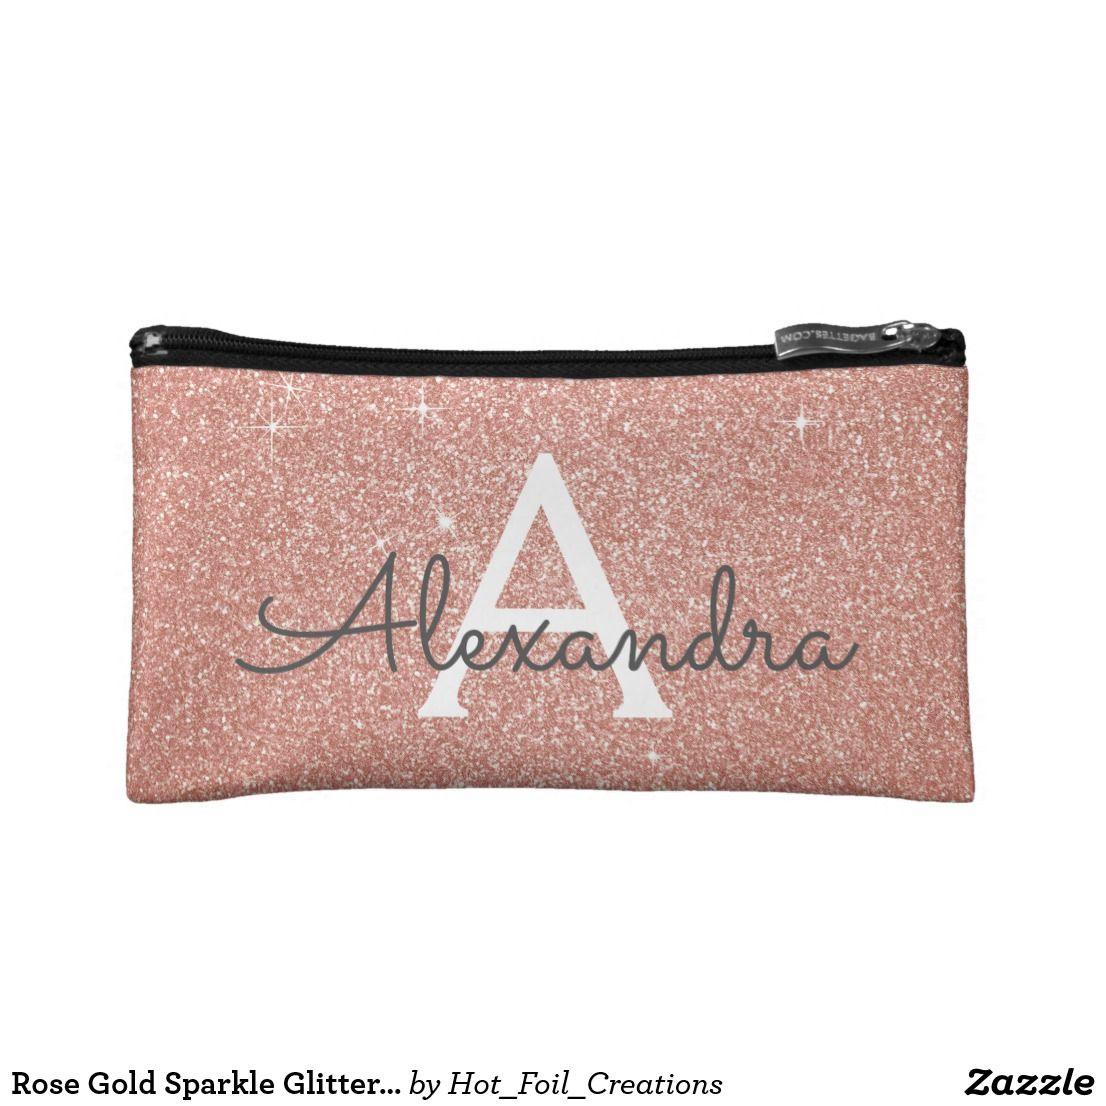 Rose Gold Sparkle Glitter Monogram Name & Initial Cosmetic